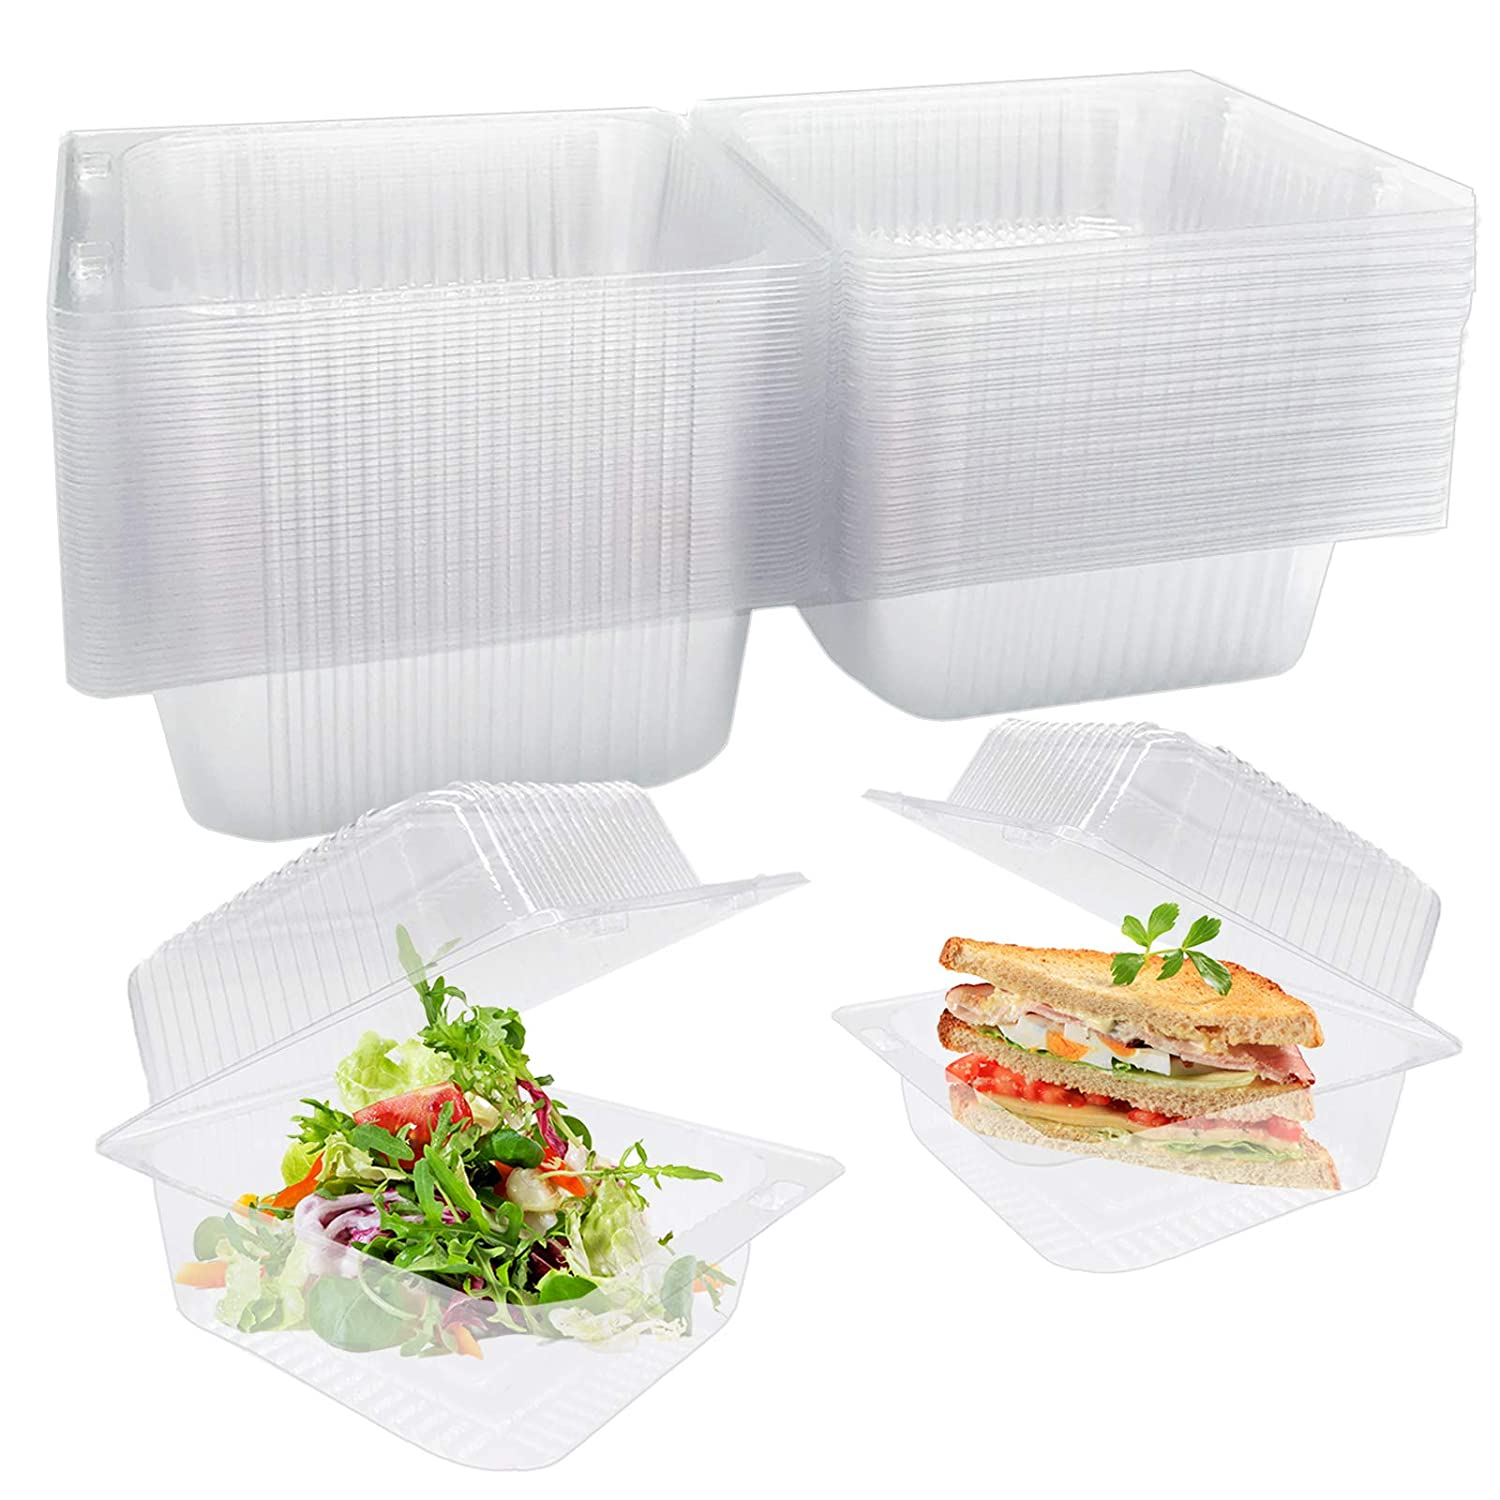 50 Pcs Clear Plastic Take Out Containers,Square Hinged Food Containers,Disposable Clamshell Dessert Container with Lid for Salad,Sandwiches,Hamburger (5x4.7x2.8 in)